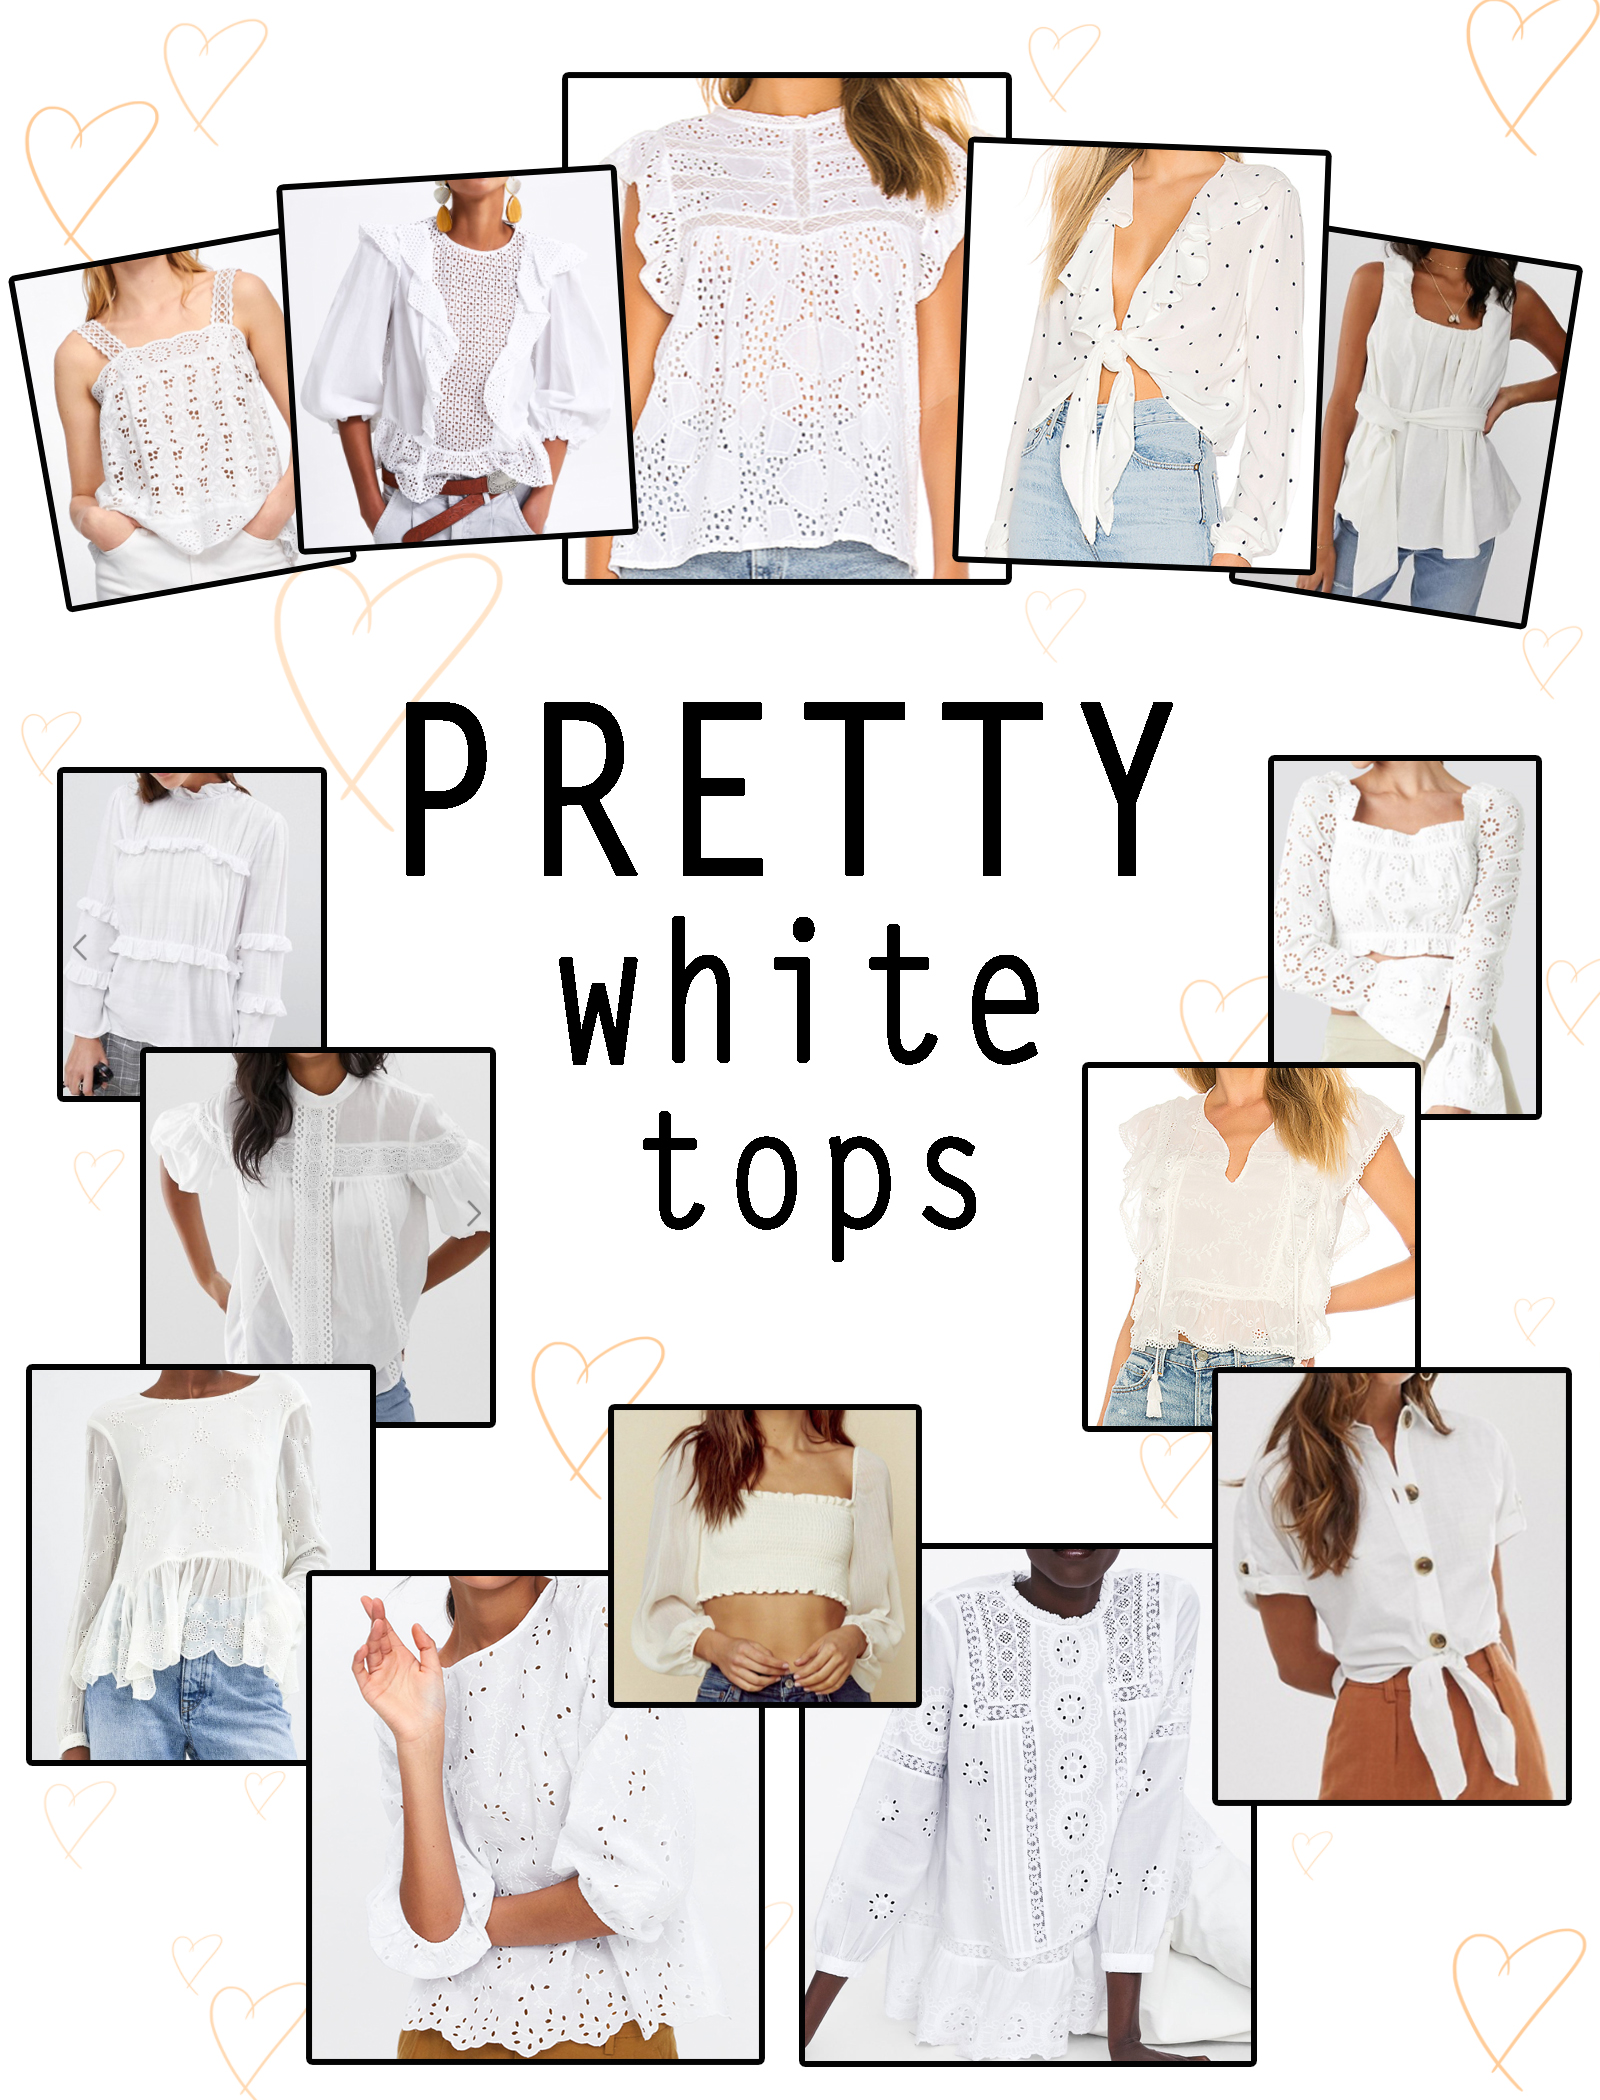 PRETTY WHITE TOPS SELECTION SHOPPING, TOPS BLANC